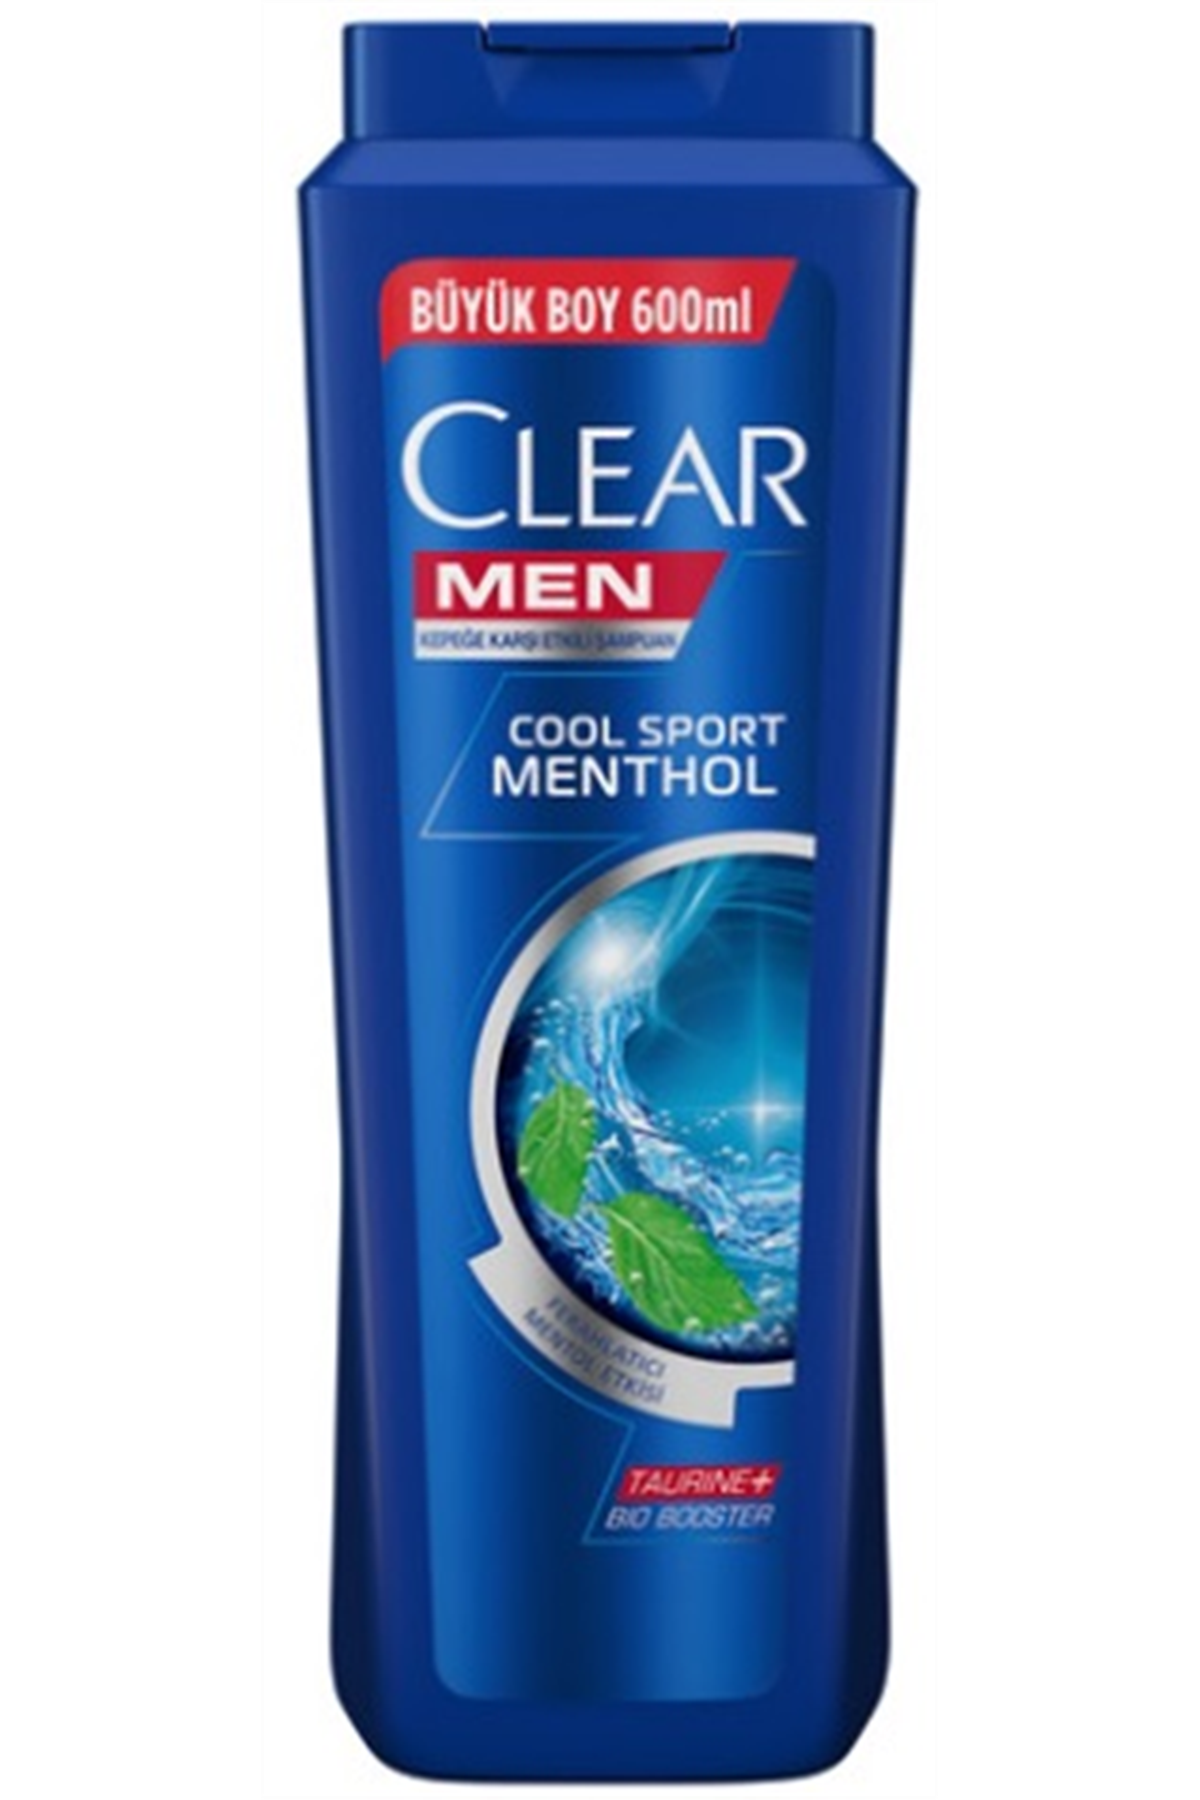 Clear Men Sampuan 600 ML Cool Sport Menthol